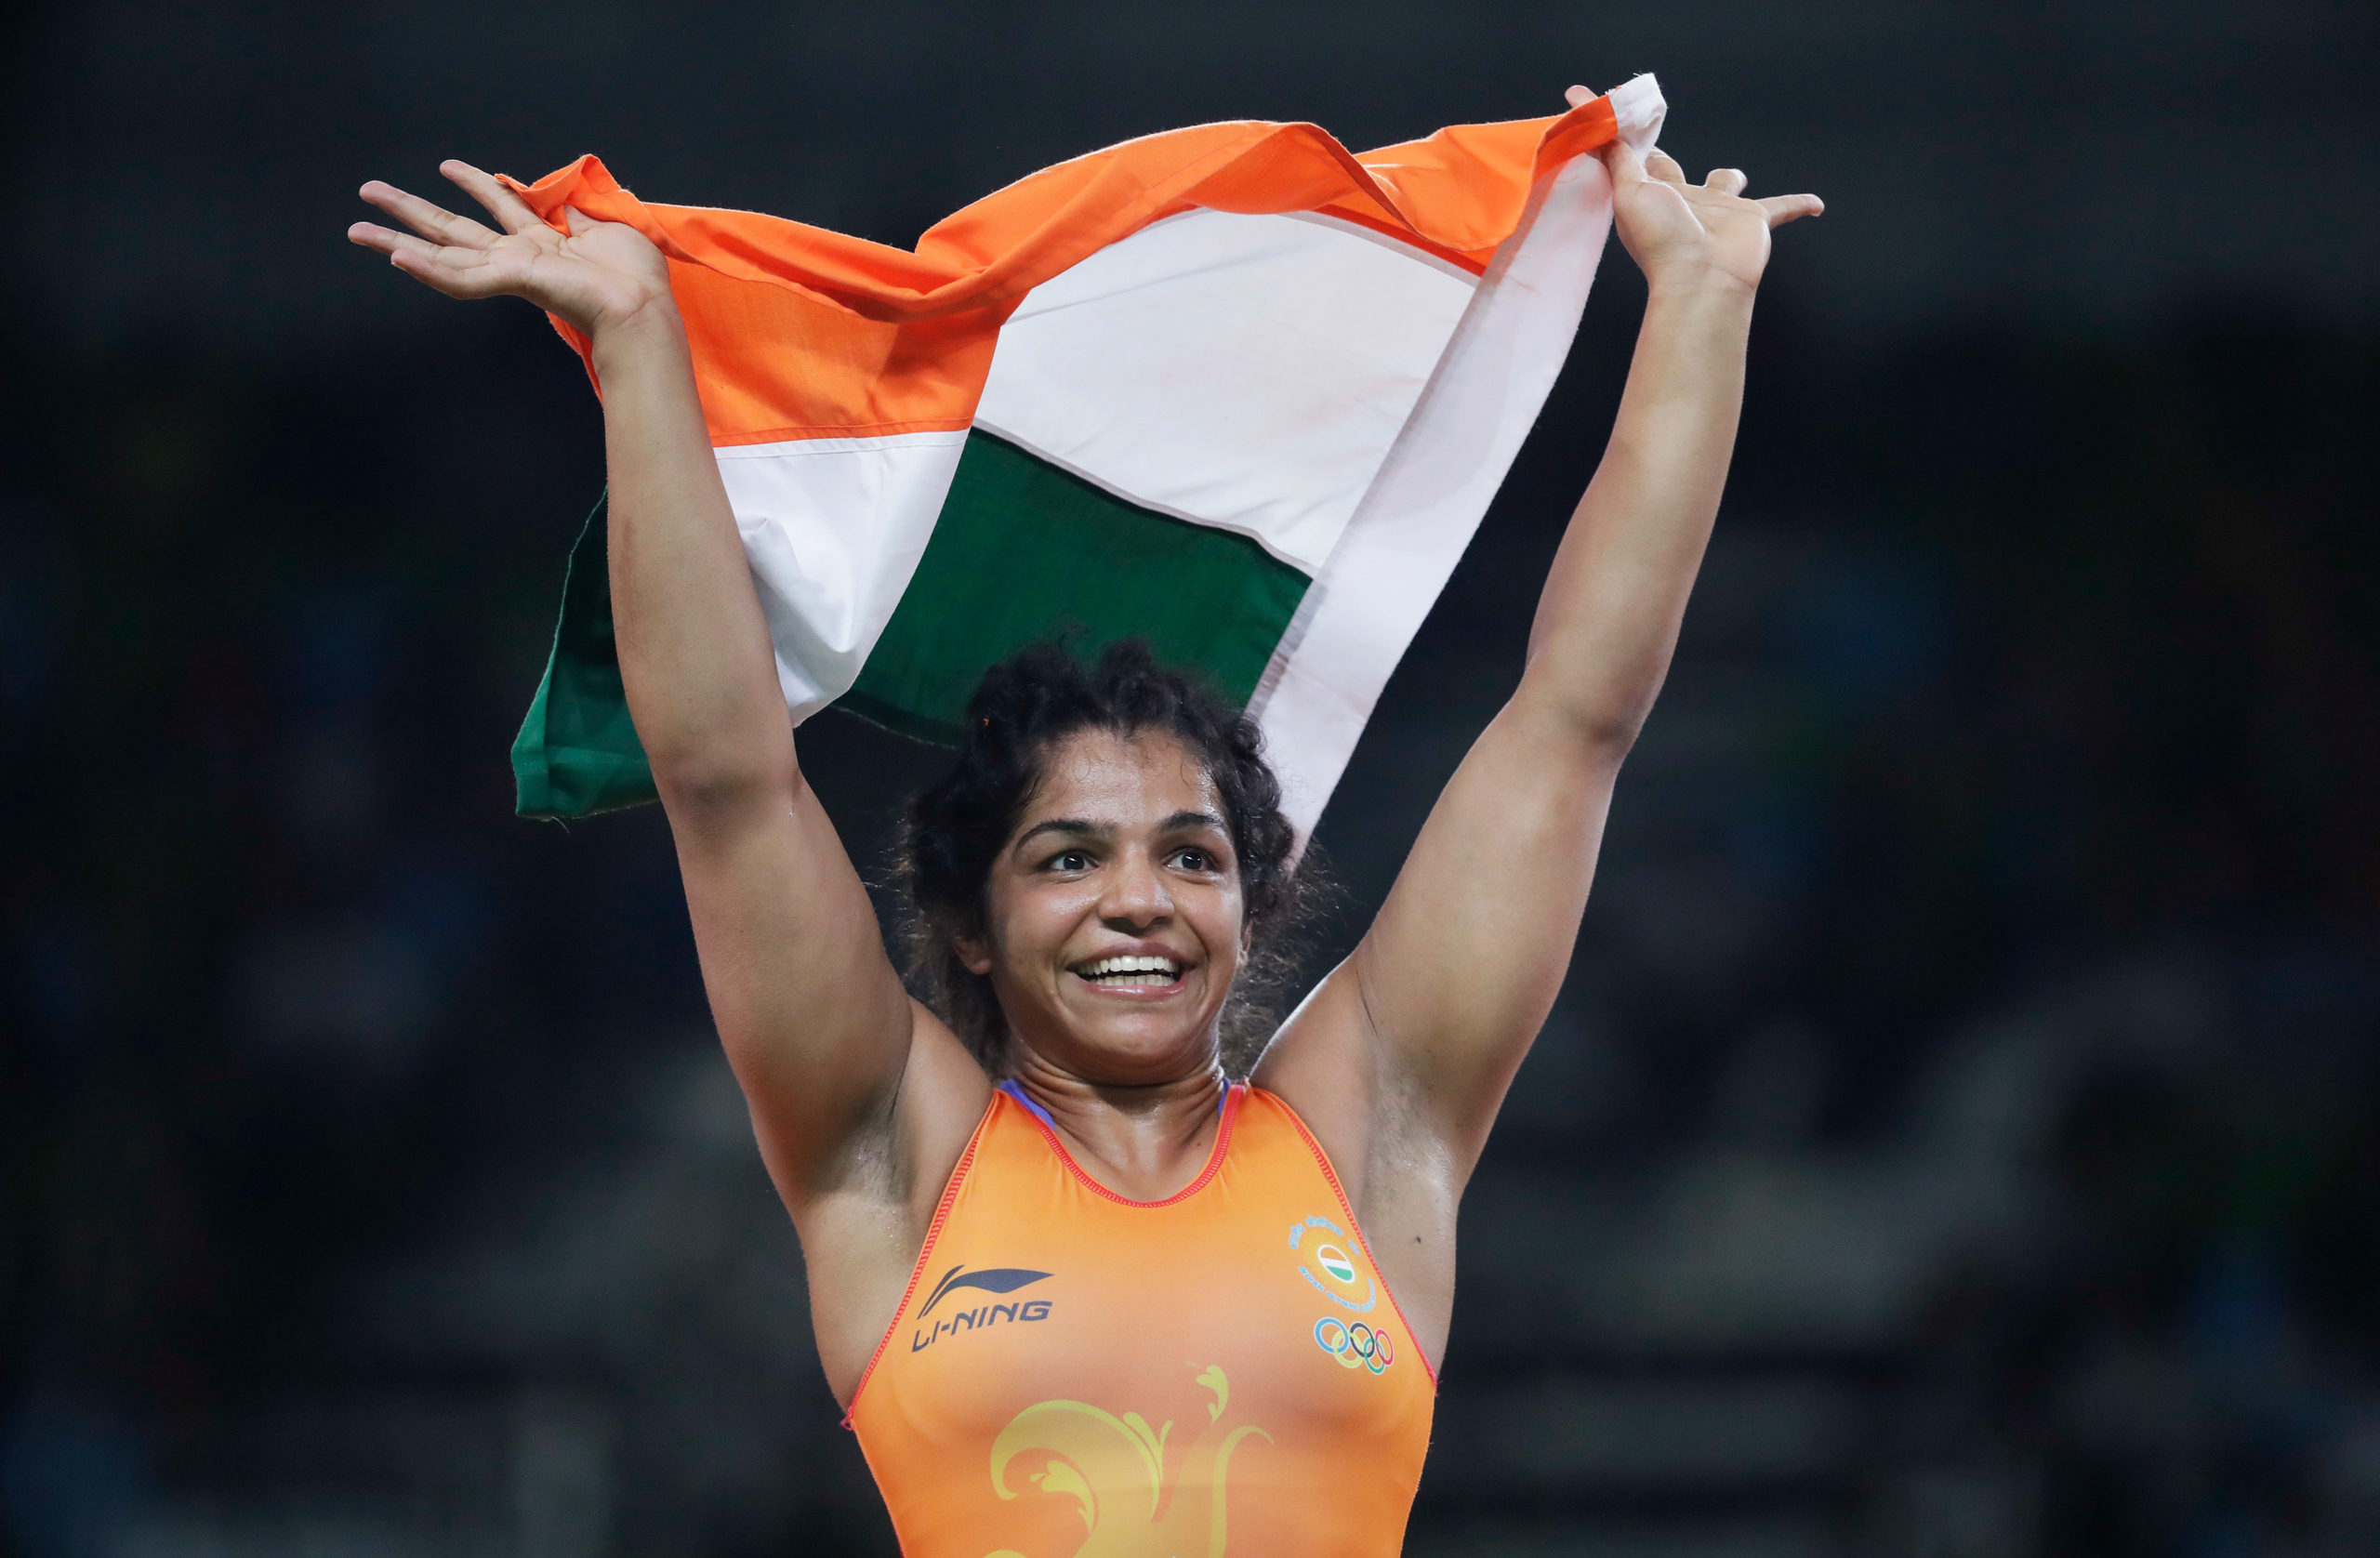 India's Sakshi Malik reacts after winning bronze against Kyrgyzstan's Aisuluu Tynybekova in the women's wrestling freestyle 58-kg competition at the Summer Olympics in Rio de Janeiro on Aug. 17, 2016